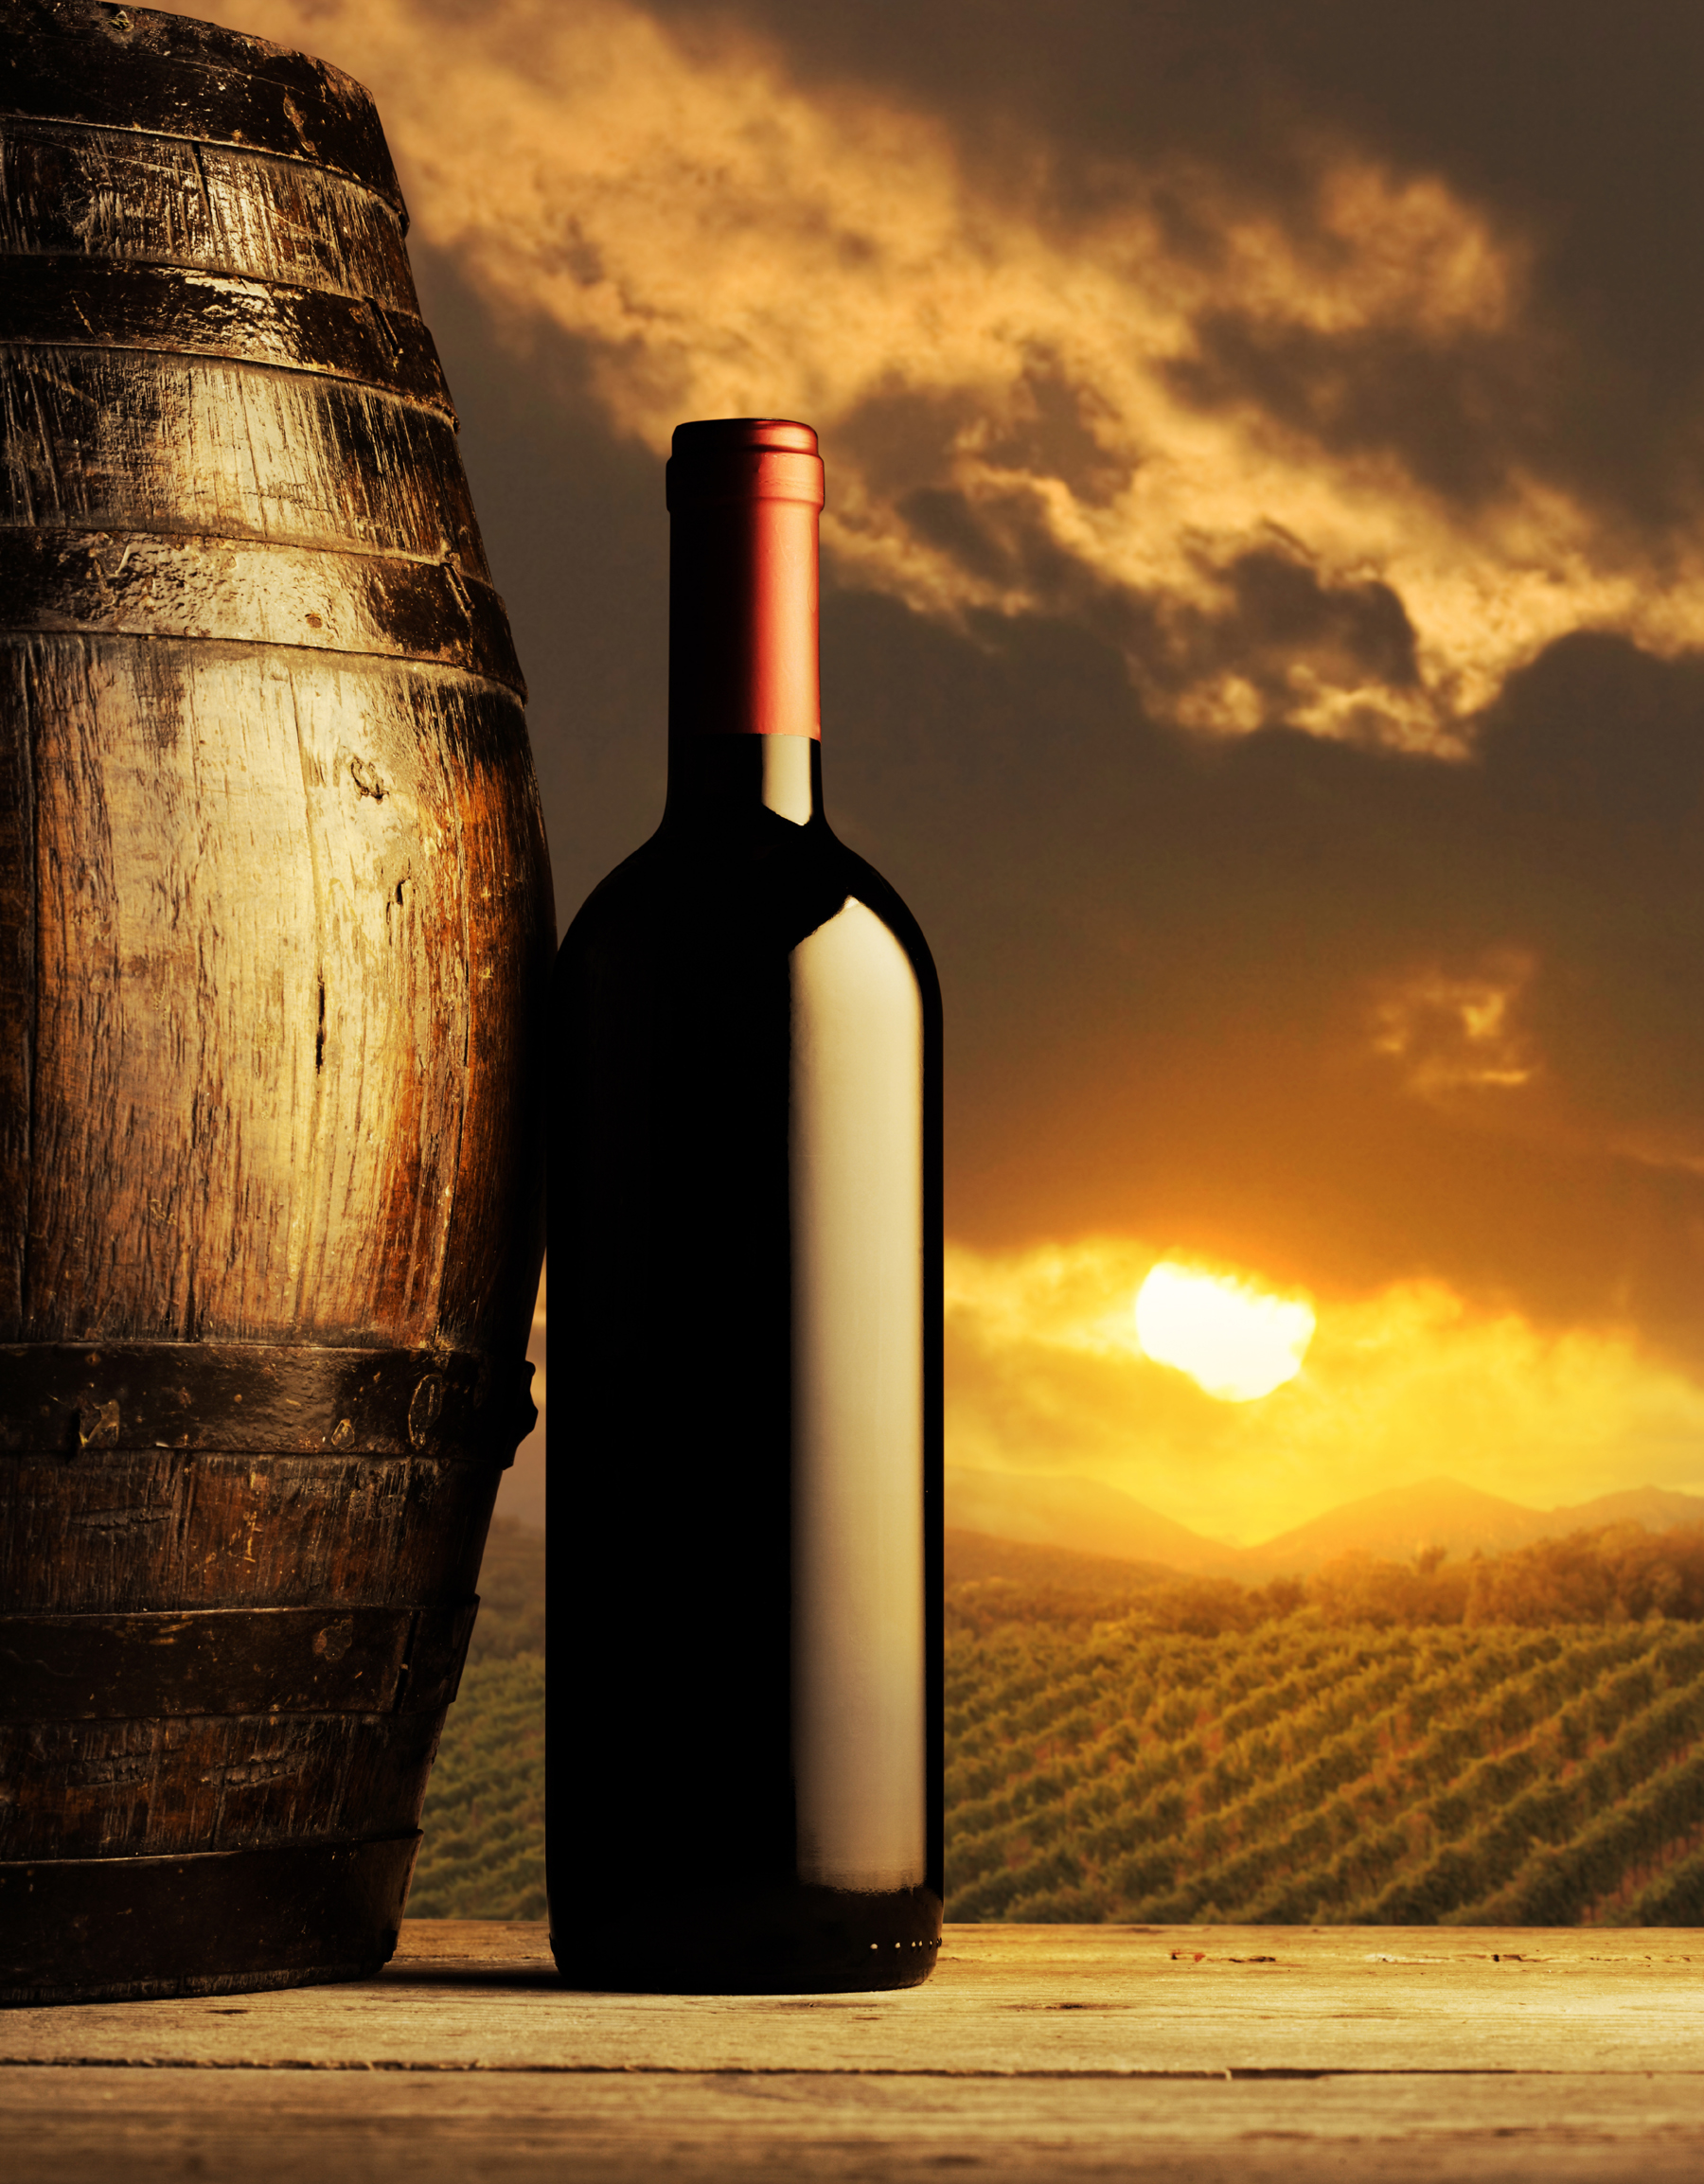 Clouds in sunshine and wine bottle 52558